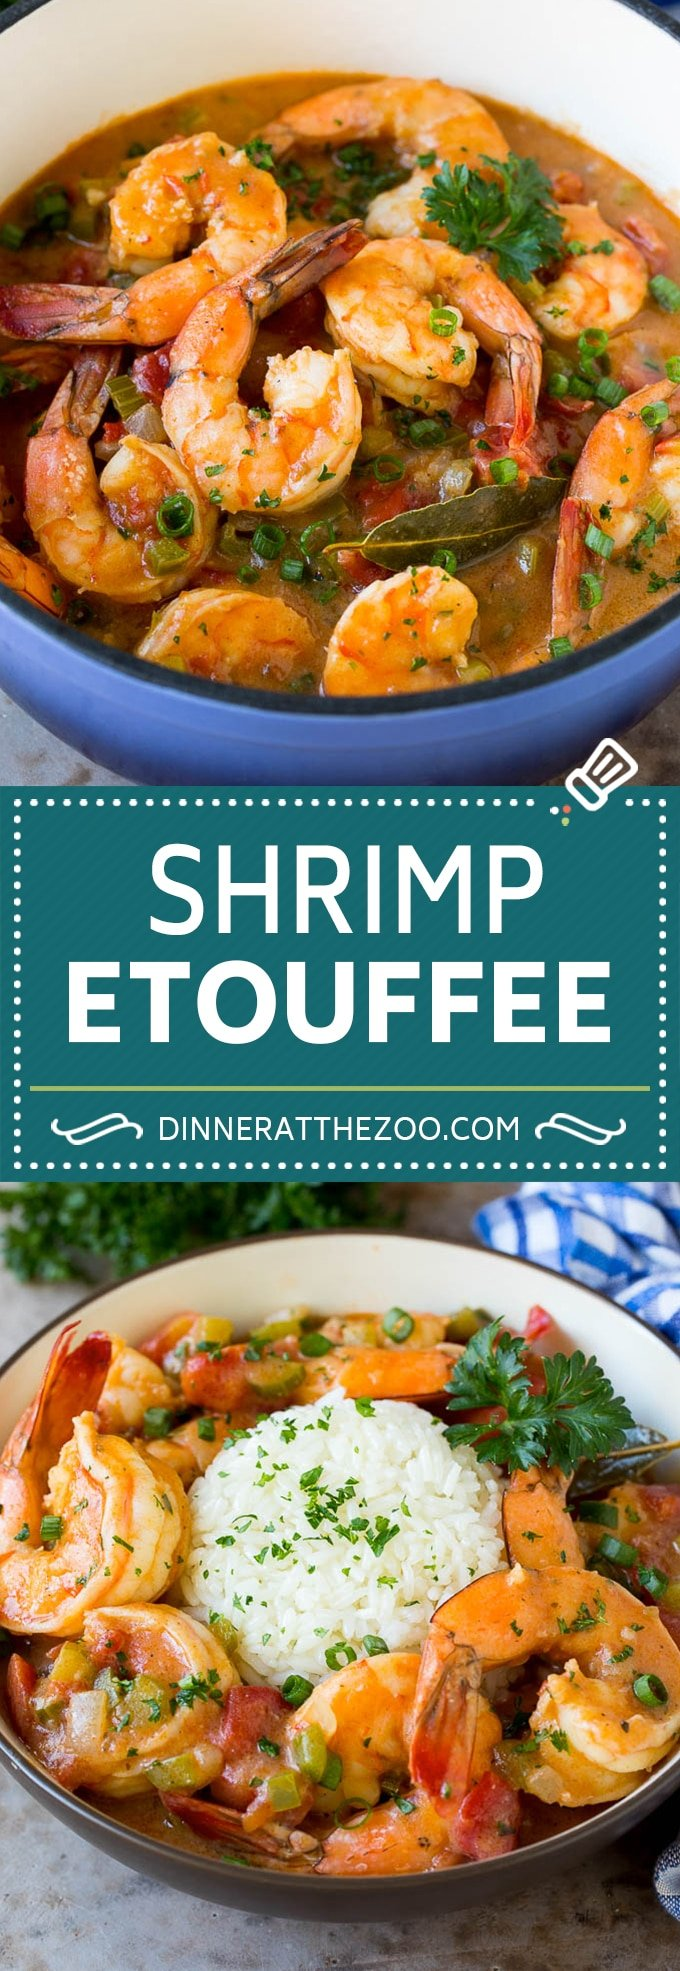 This shrimp etouffee is tender and succulent shrimp stewed with tomatoes, vegetables and seasonings.